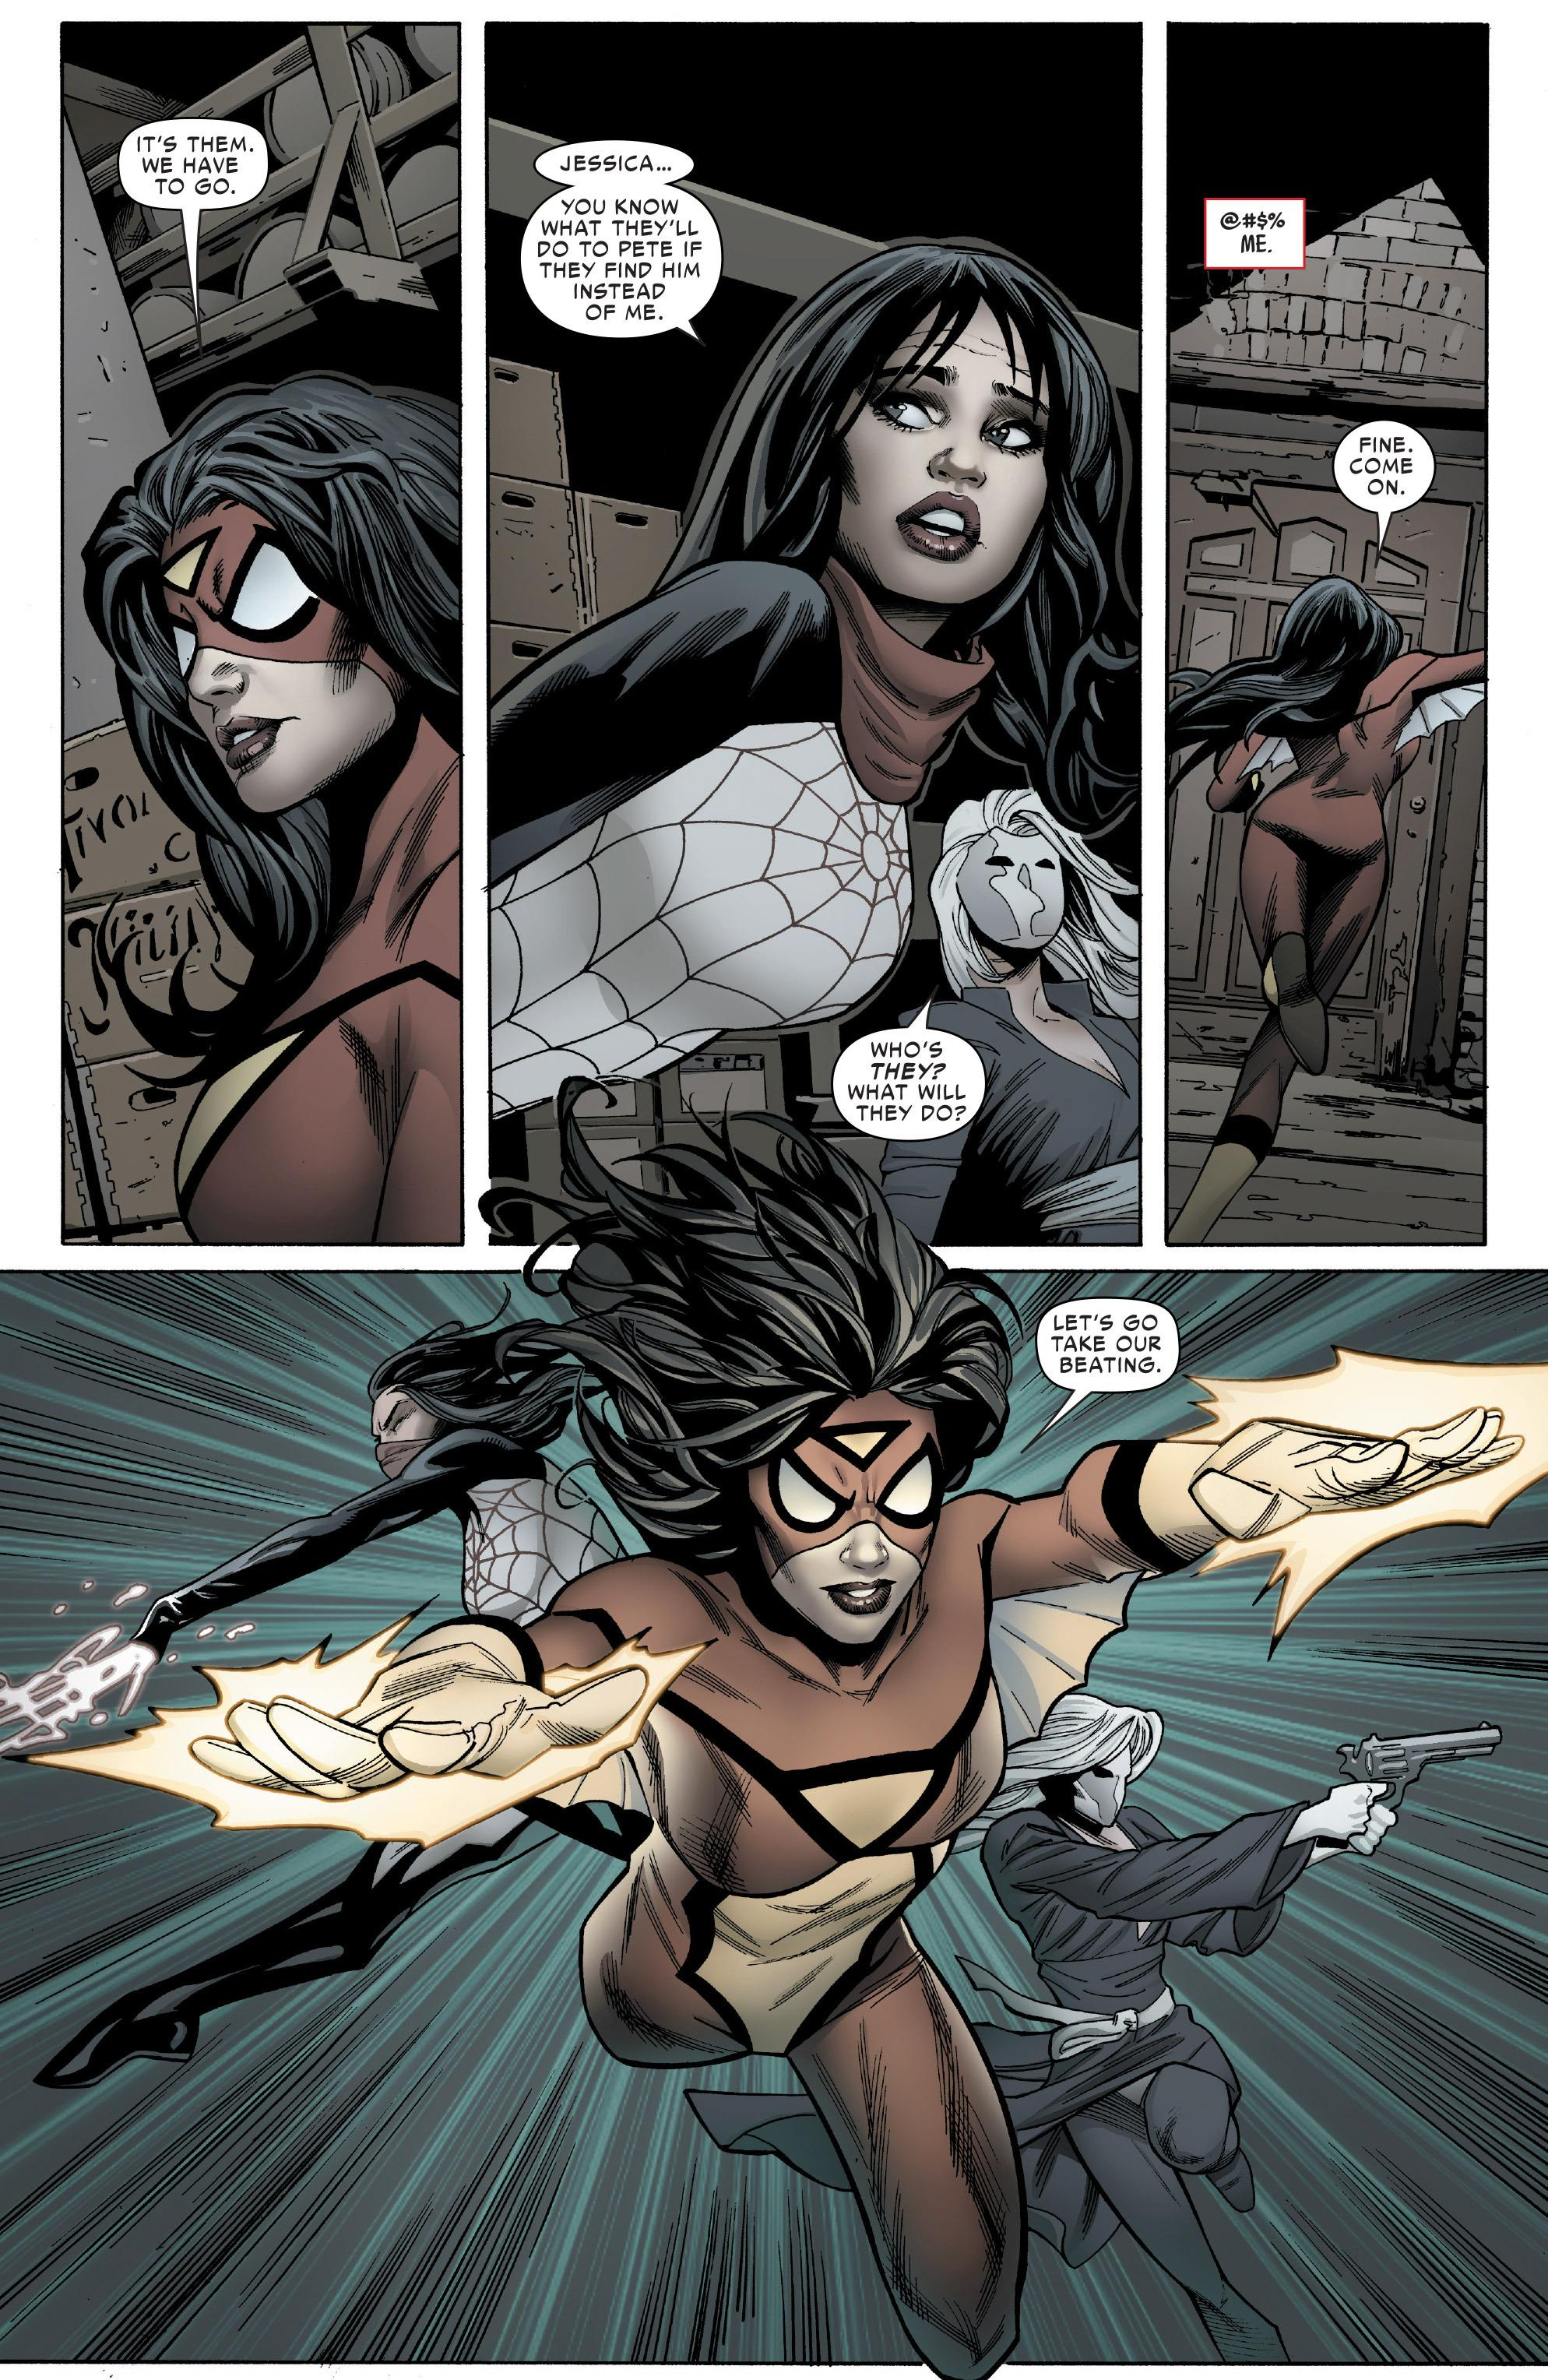 Spider-Woman V1 Spider-Verse review